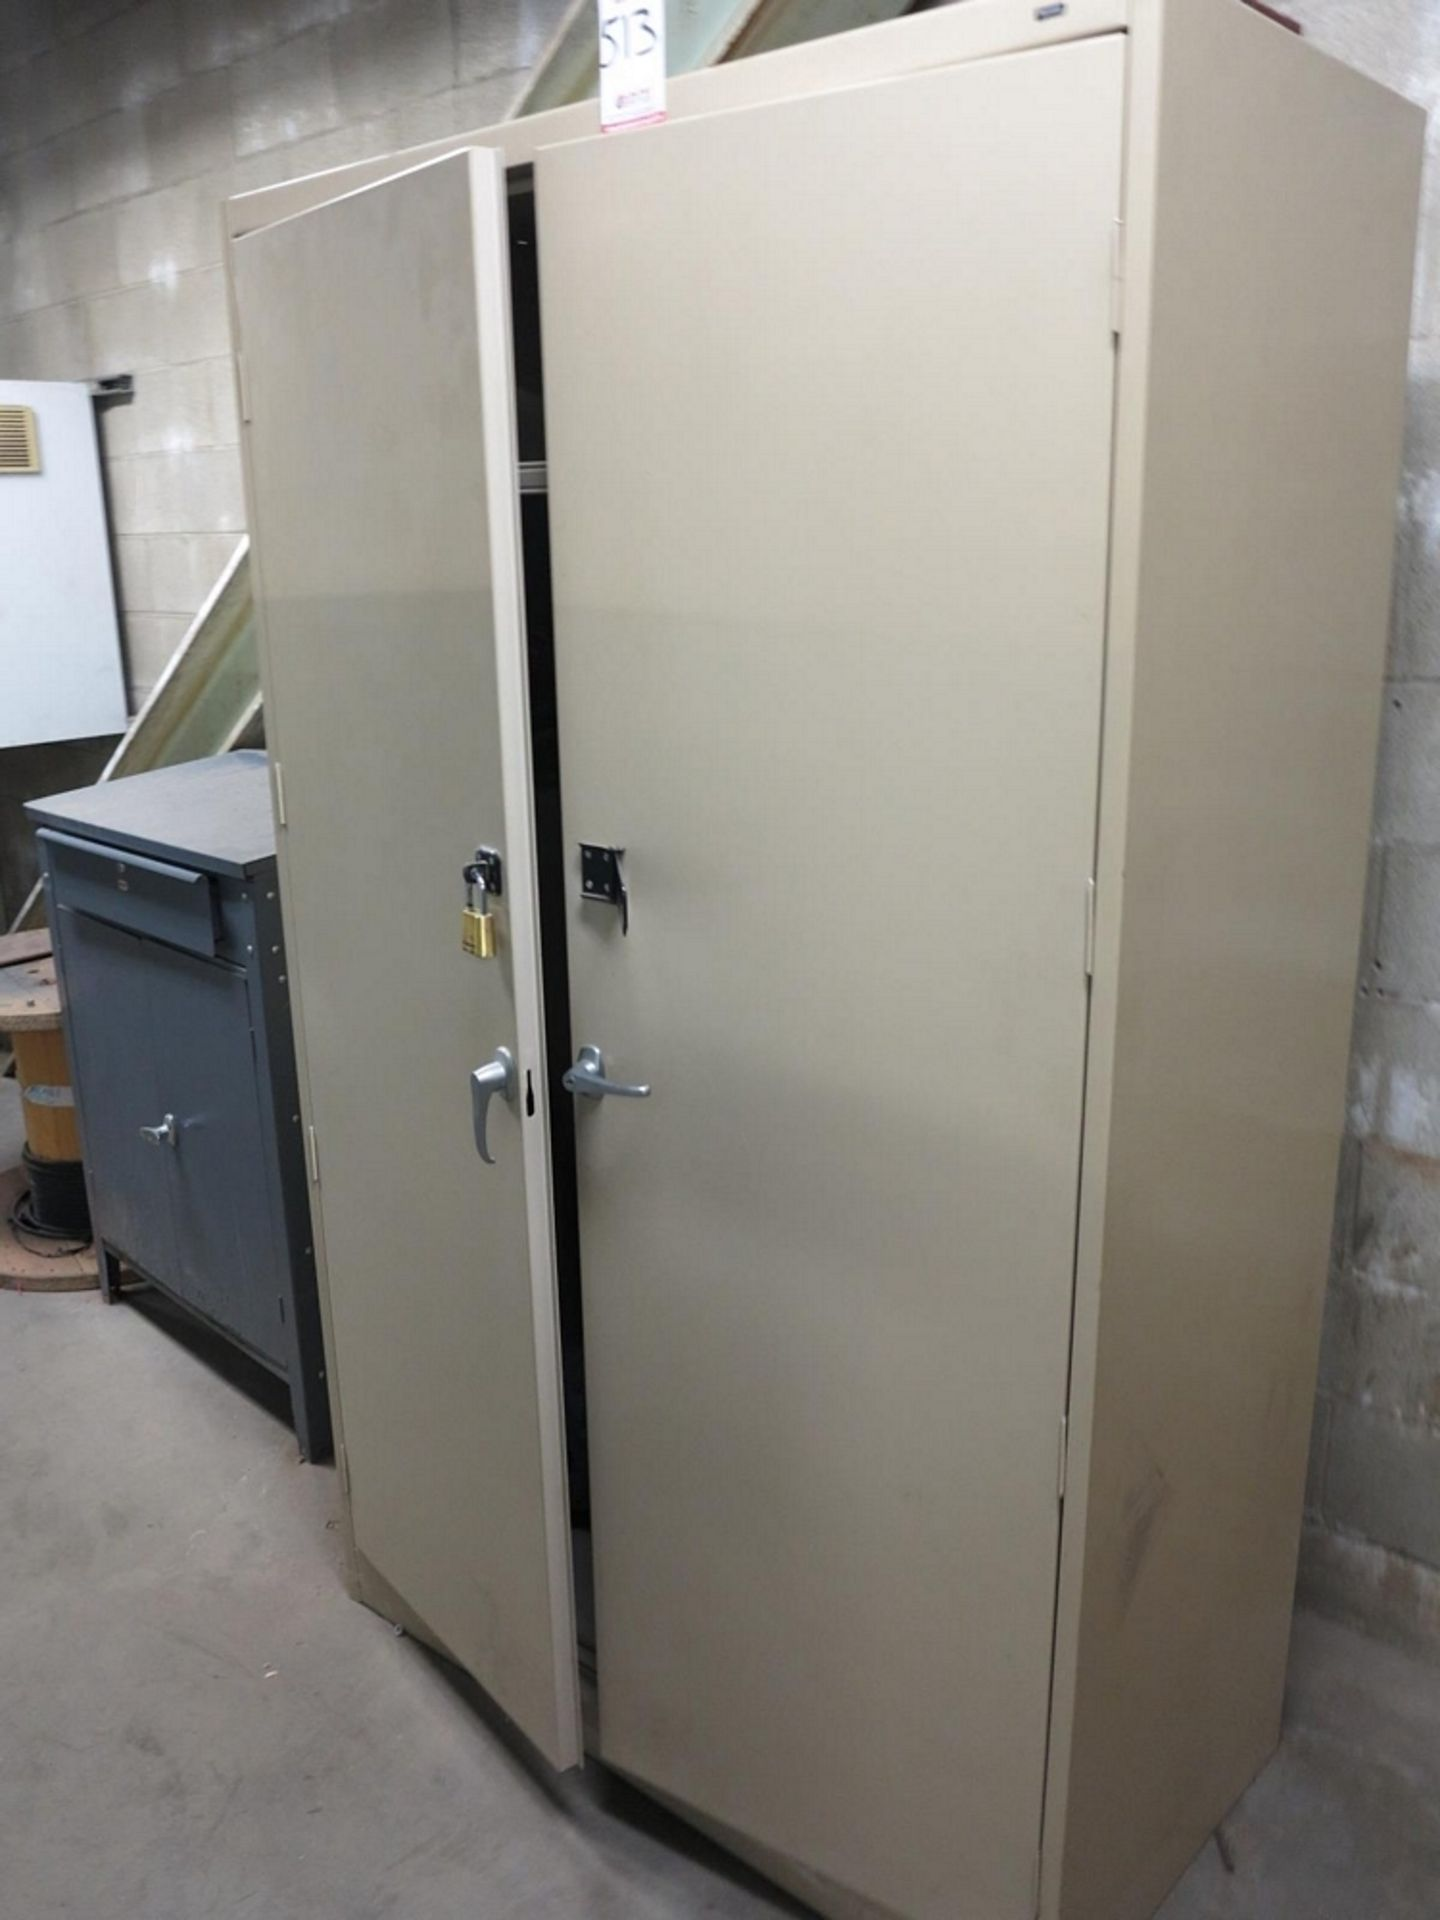 Lot 513 - LOT - 2-DOOR STORAGE CABINET, FOREMAN'S DESK AND SMALL 2-DOOR STORAGE CABINET W/ CONTENTS